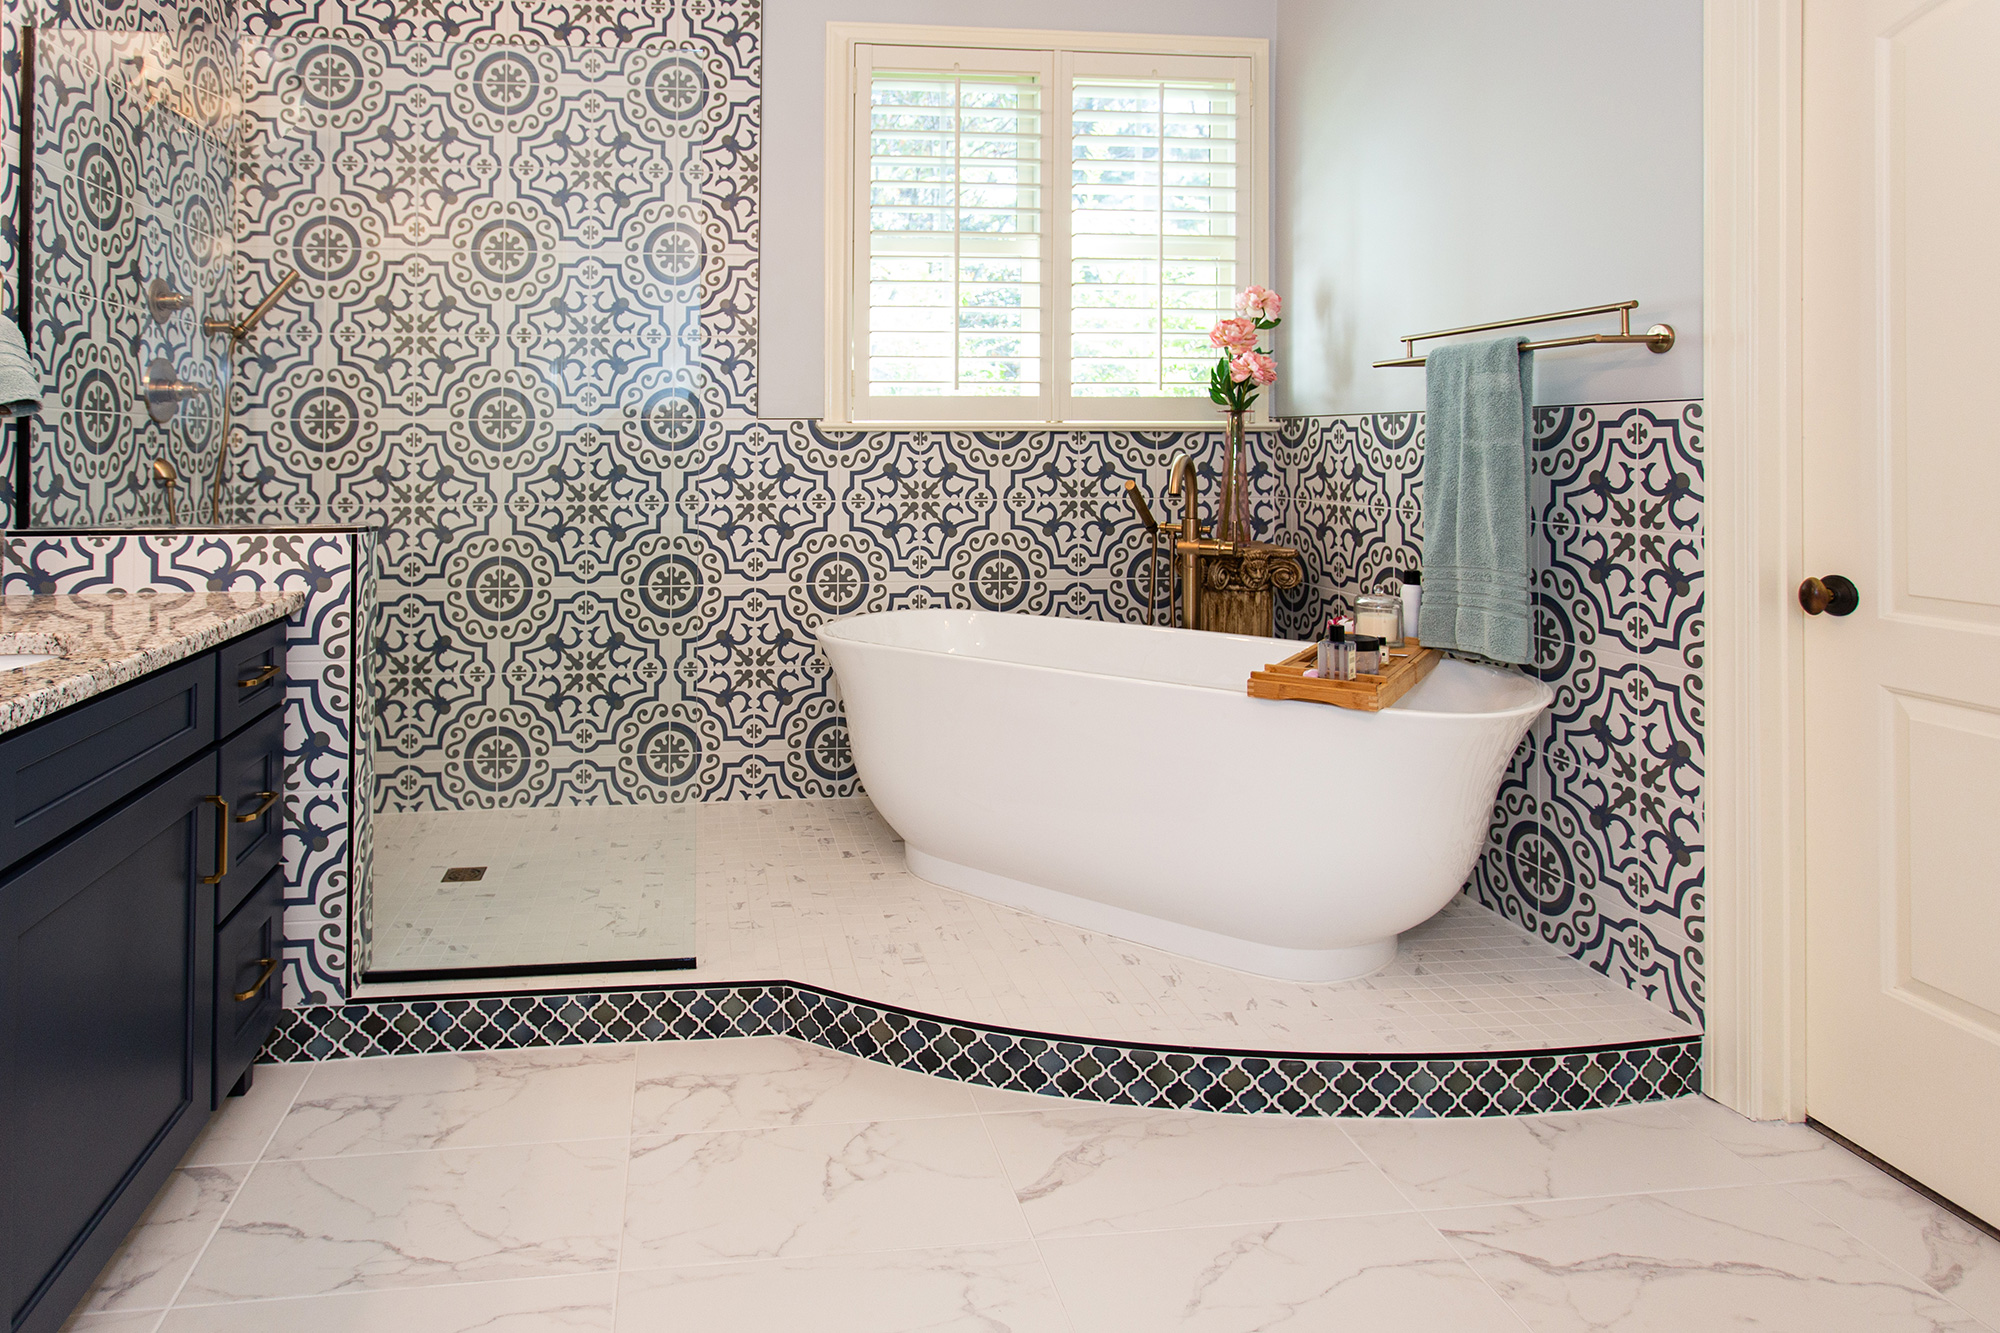 Benchmark Design Remodel Bathroom Remodel Cary NC